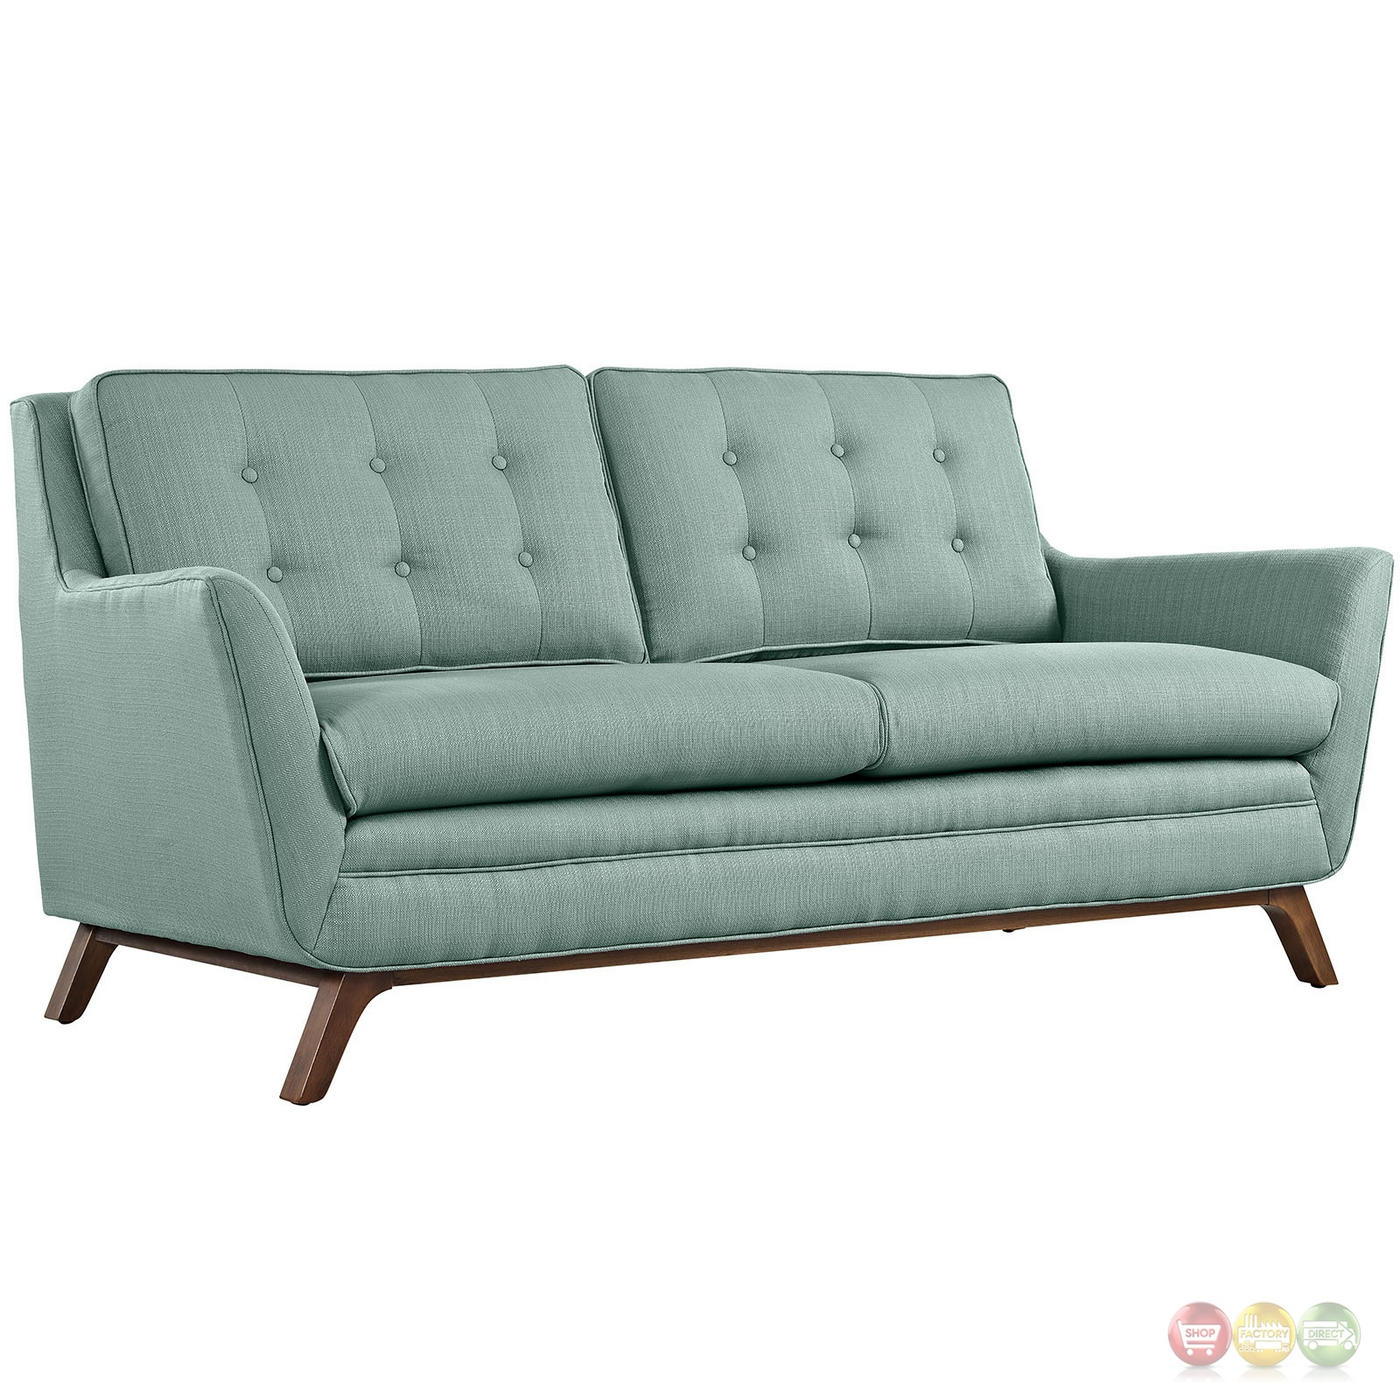 tufted sofa set mid century modern cheap beguile 2pc upholstered button and loveseat